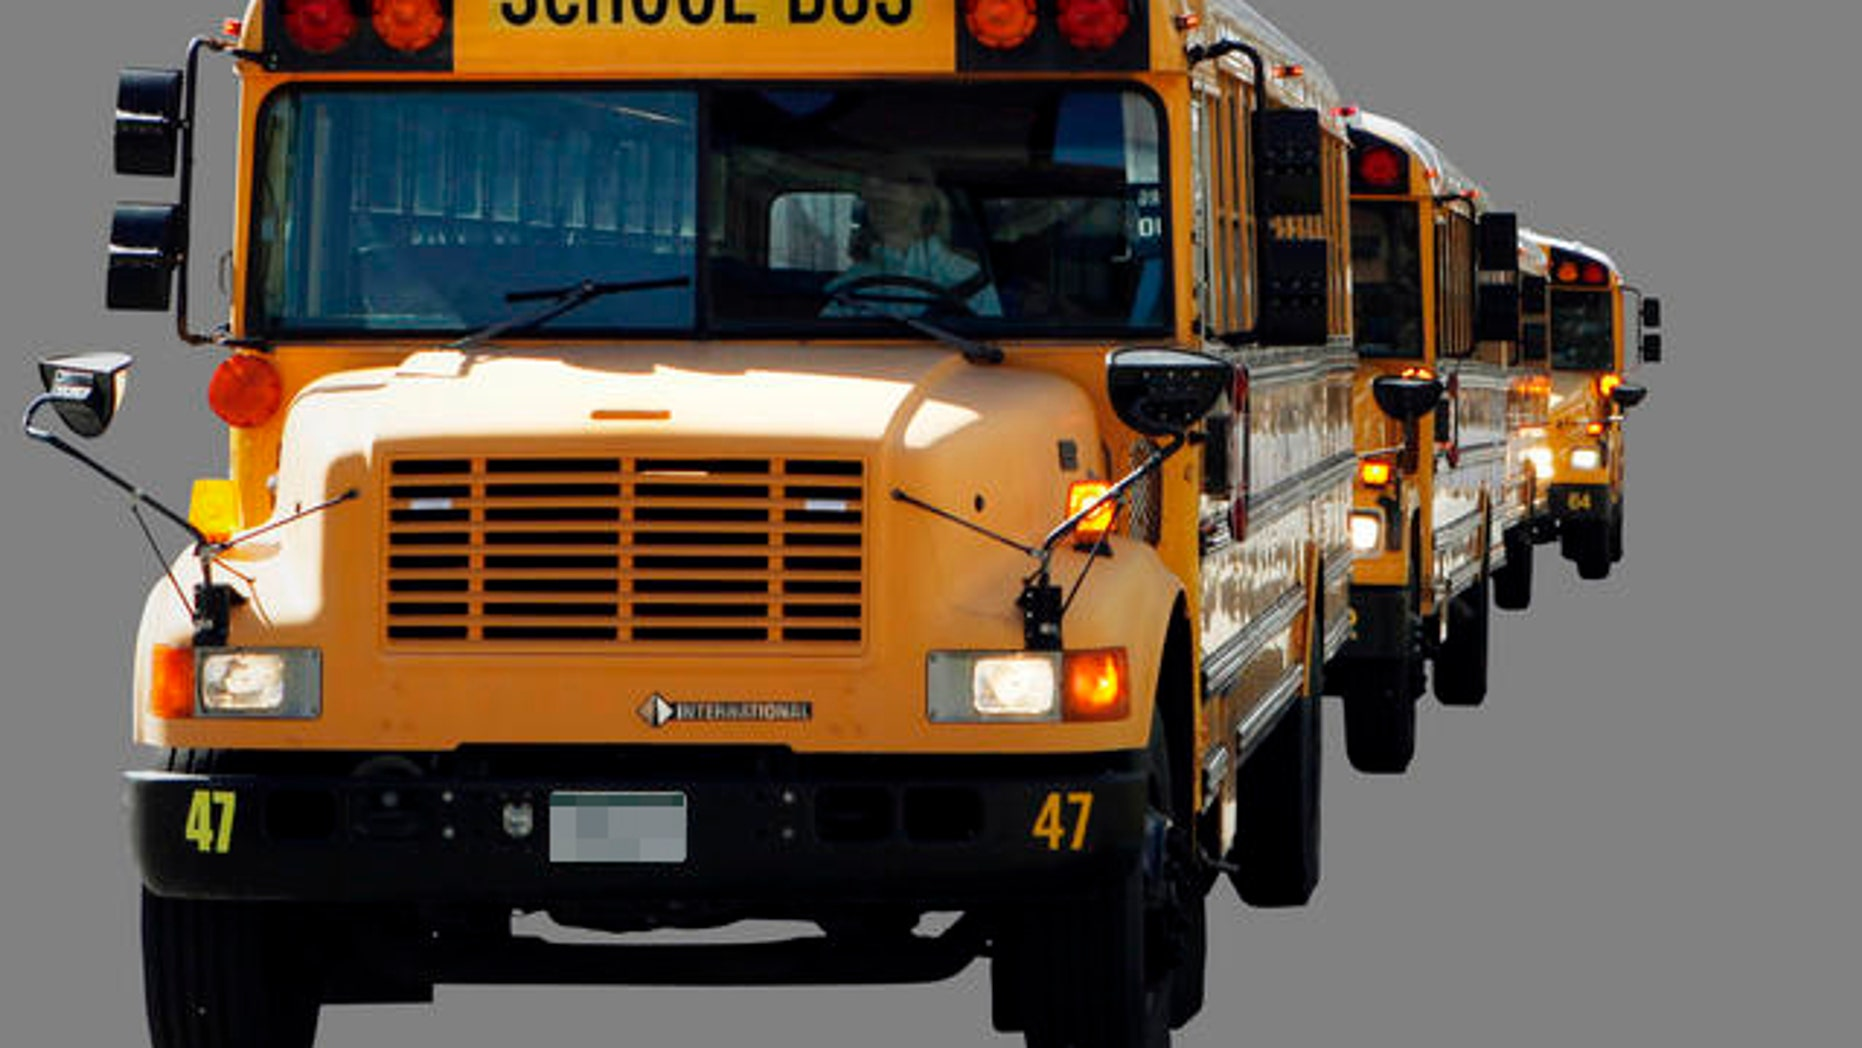 """About 50 buses from Falcon School District 49 circled the state Capitol on Thursday March 31, 2011, with messages for lawmakers considering cutting education funding. The messages included """"NO CUTS"""" and """"DRIVING OUR FUTURE."""" (AP Photo/Ed Andrieski)"""